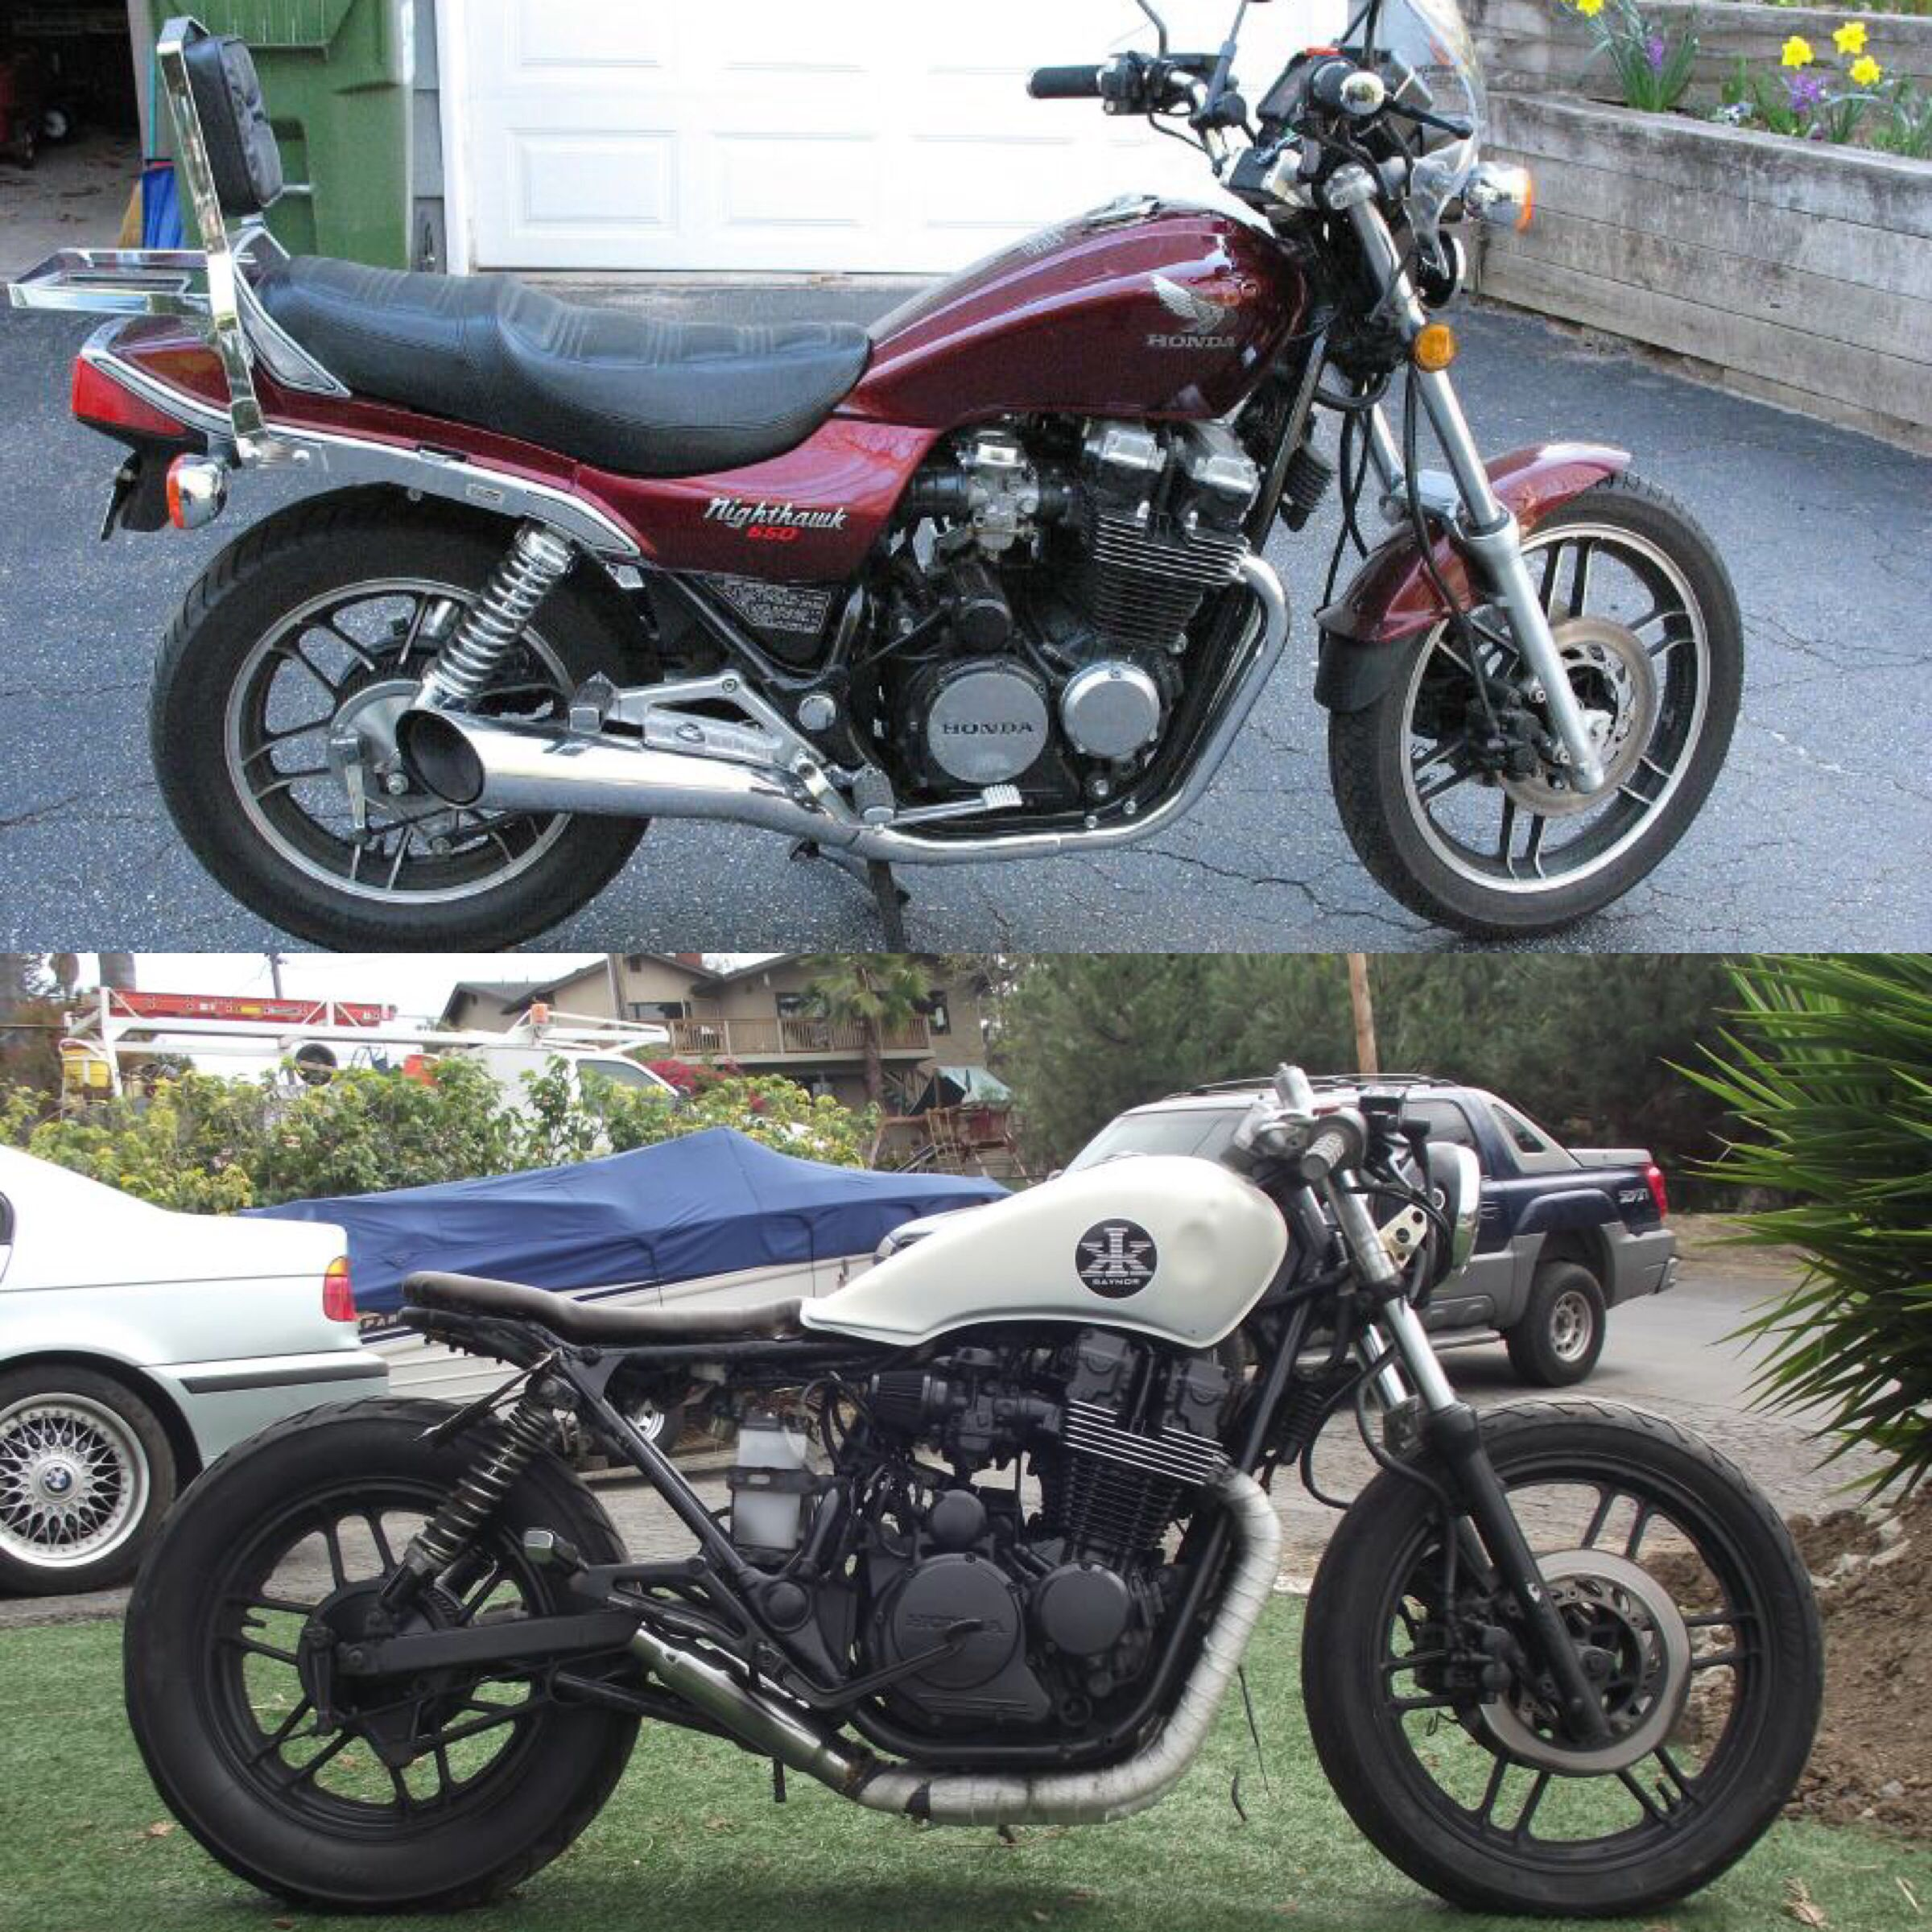 Before & after: 1983 CB650SC Nighthawk | Cafe racer | Cafe racer